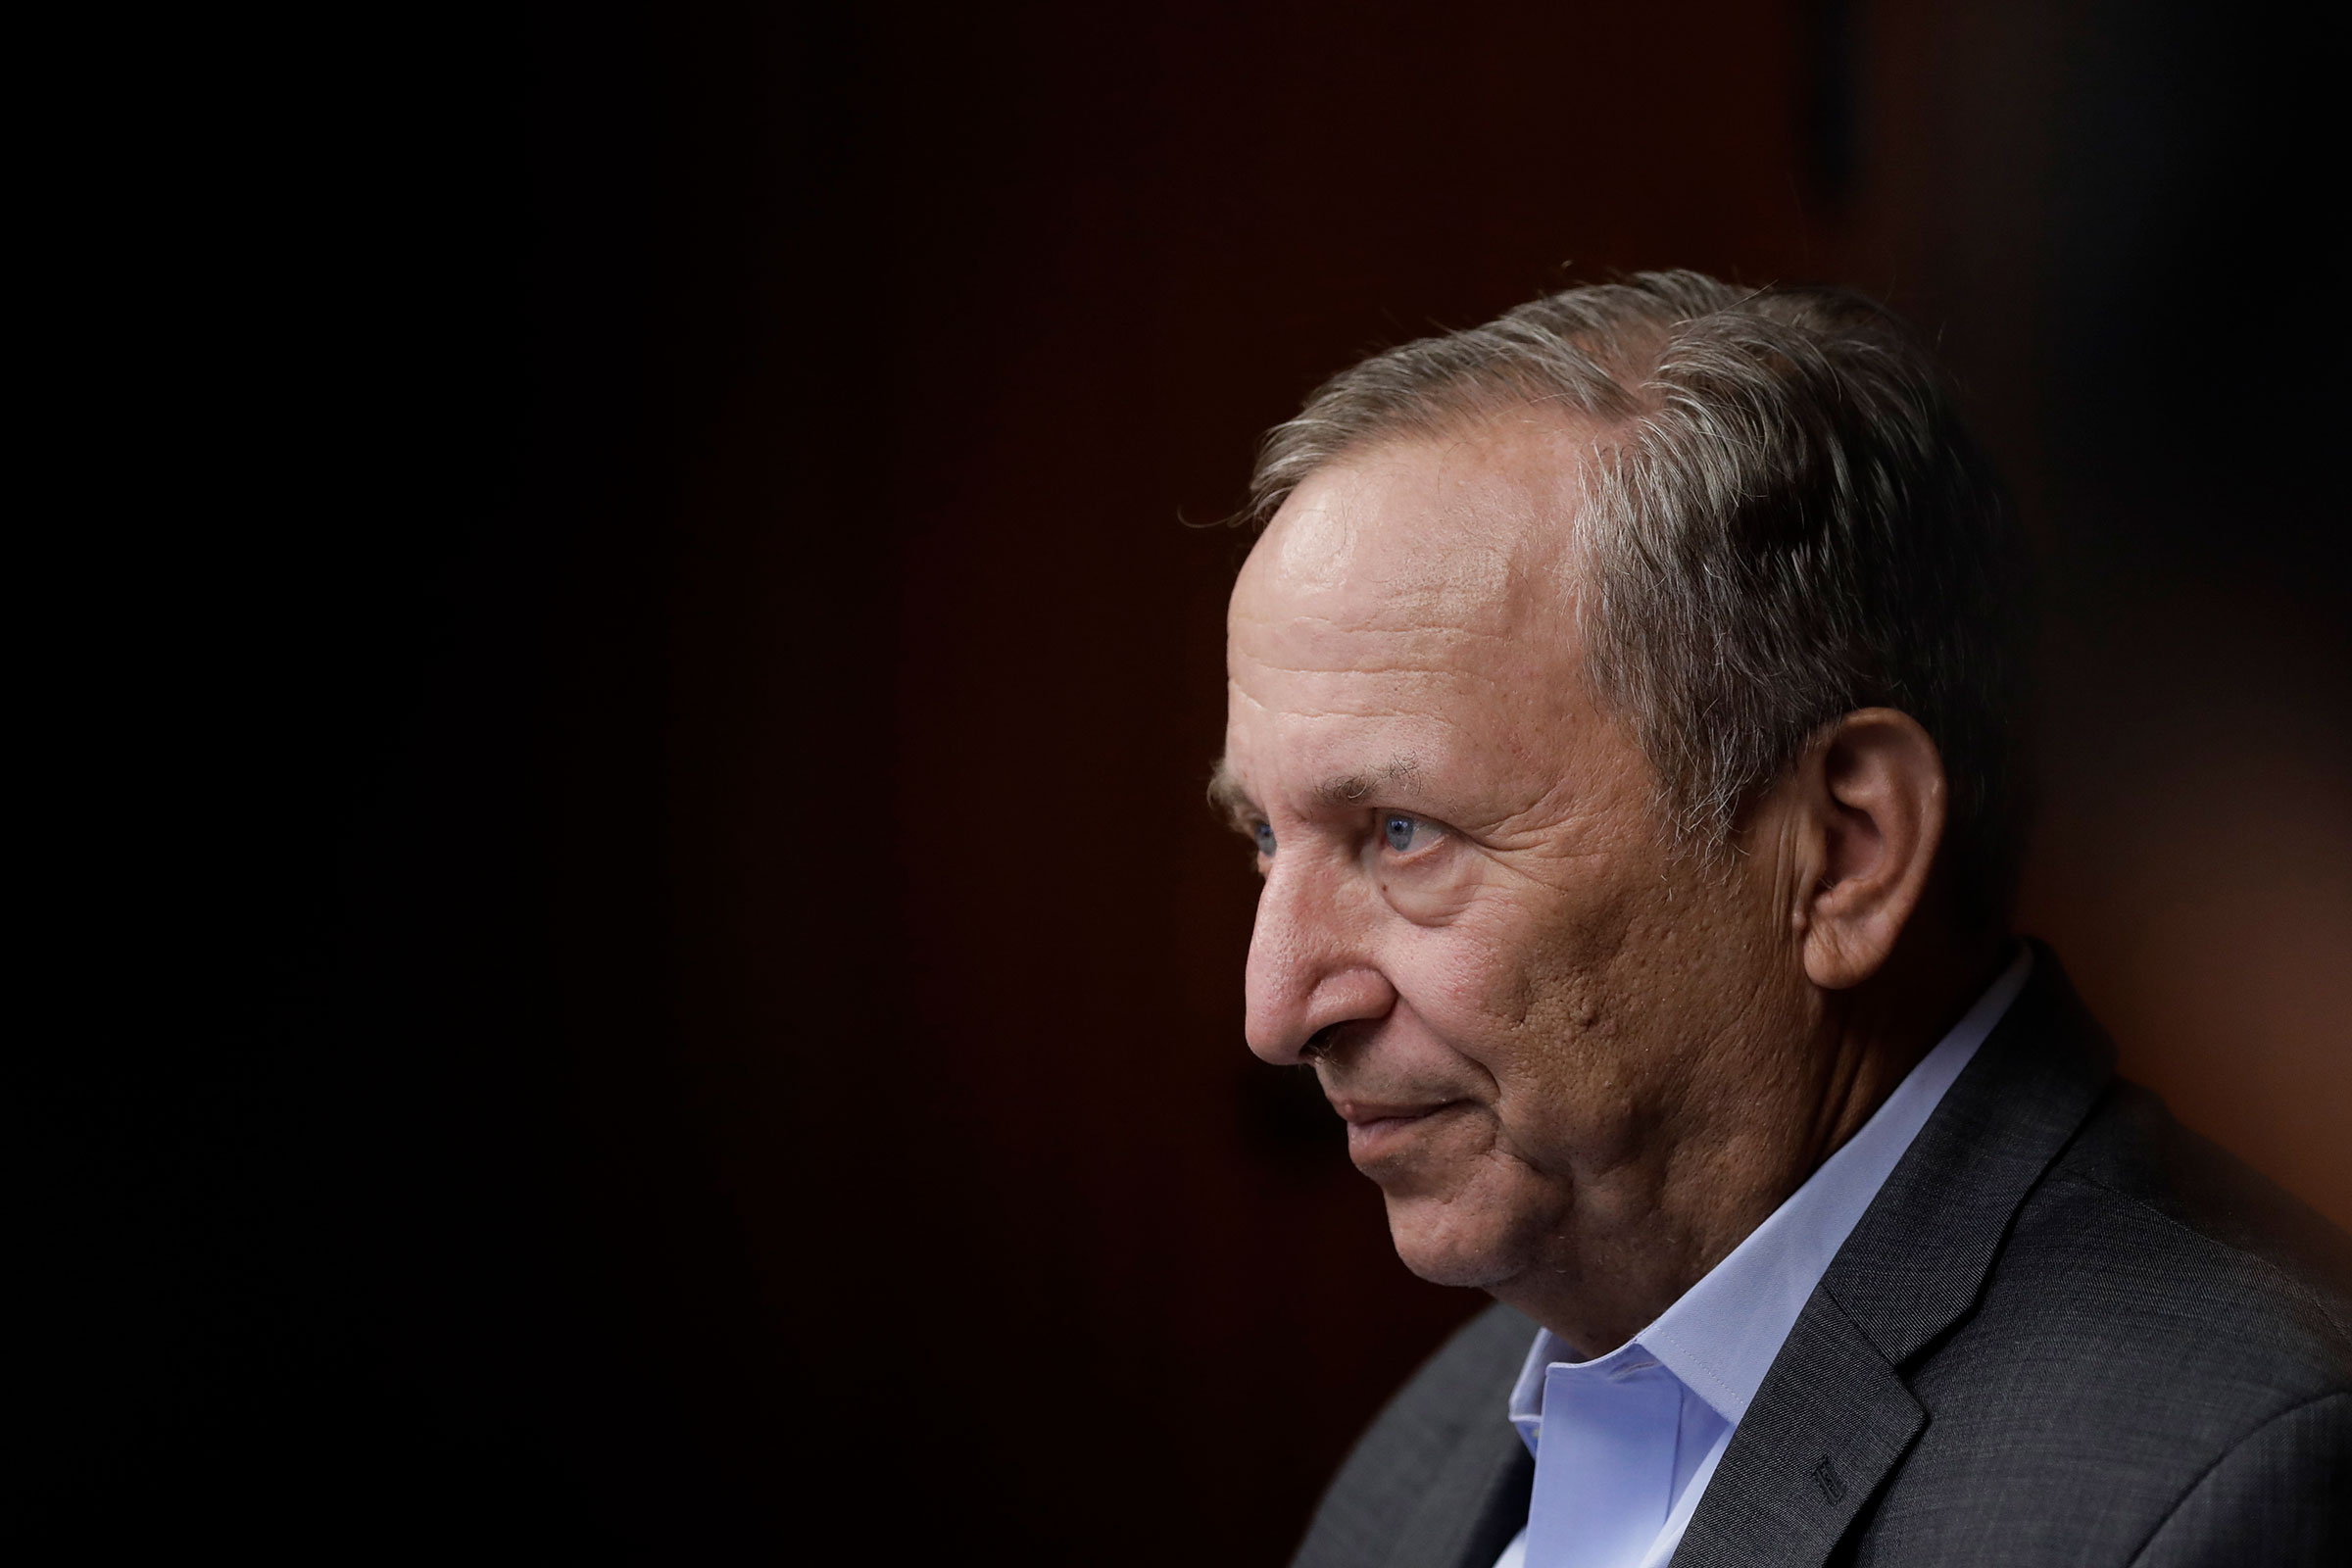 Larry Summers, former U.S. Treasury secretary, listens during a question-and-answer session with the media at a workshop in Tokyo, on Sept. 30, 2016.